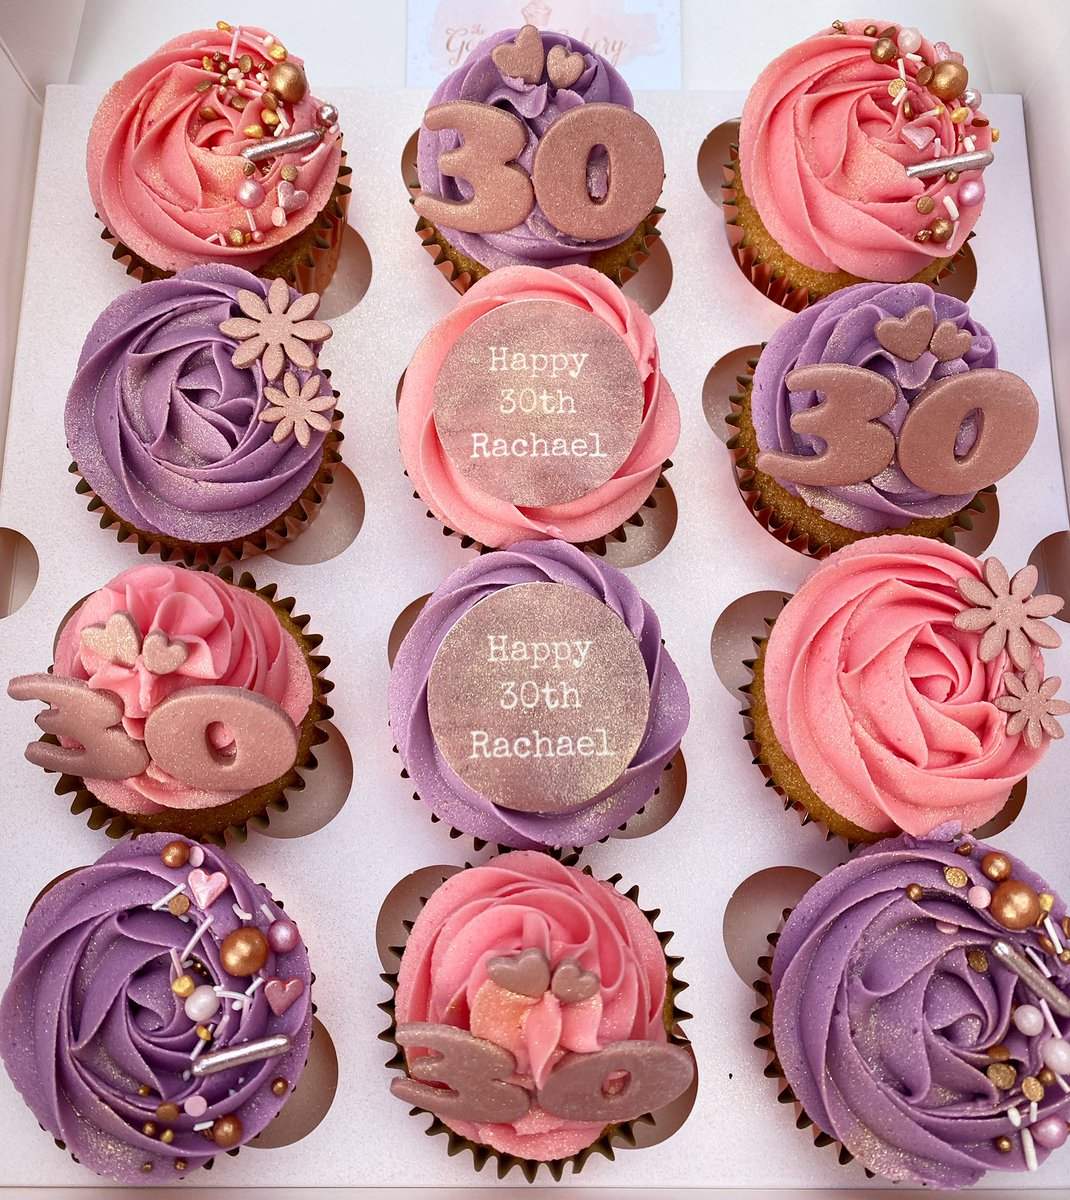 Love the colour of these ones😍💜💖 #thegourmetcakeryco #thegourmetcakeryco #cakes #cupcakes #rosegold #pink #purple #rosegoldcupcakes #sprinkles #cupcaketoppers #edibletoppers #bolton #boltoncakes #boltoncupcakes #manchetser #manchestercupcakes #manchestercakes #monday